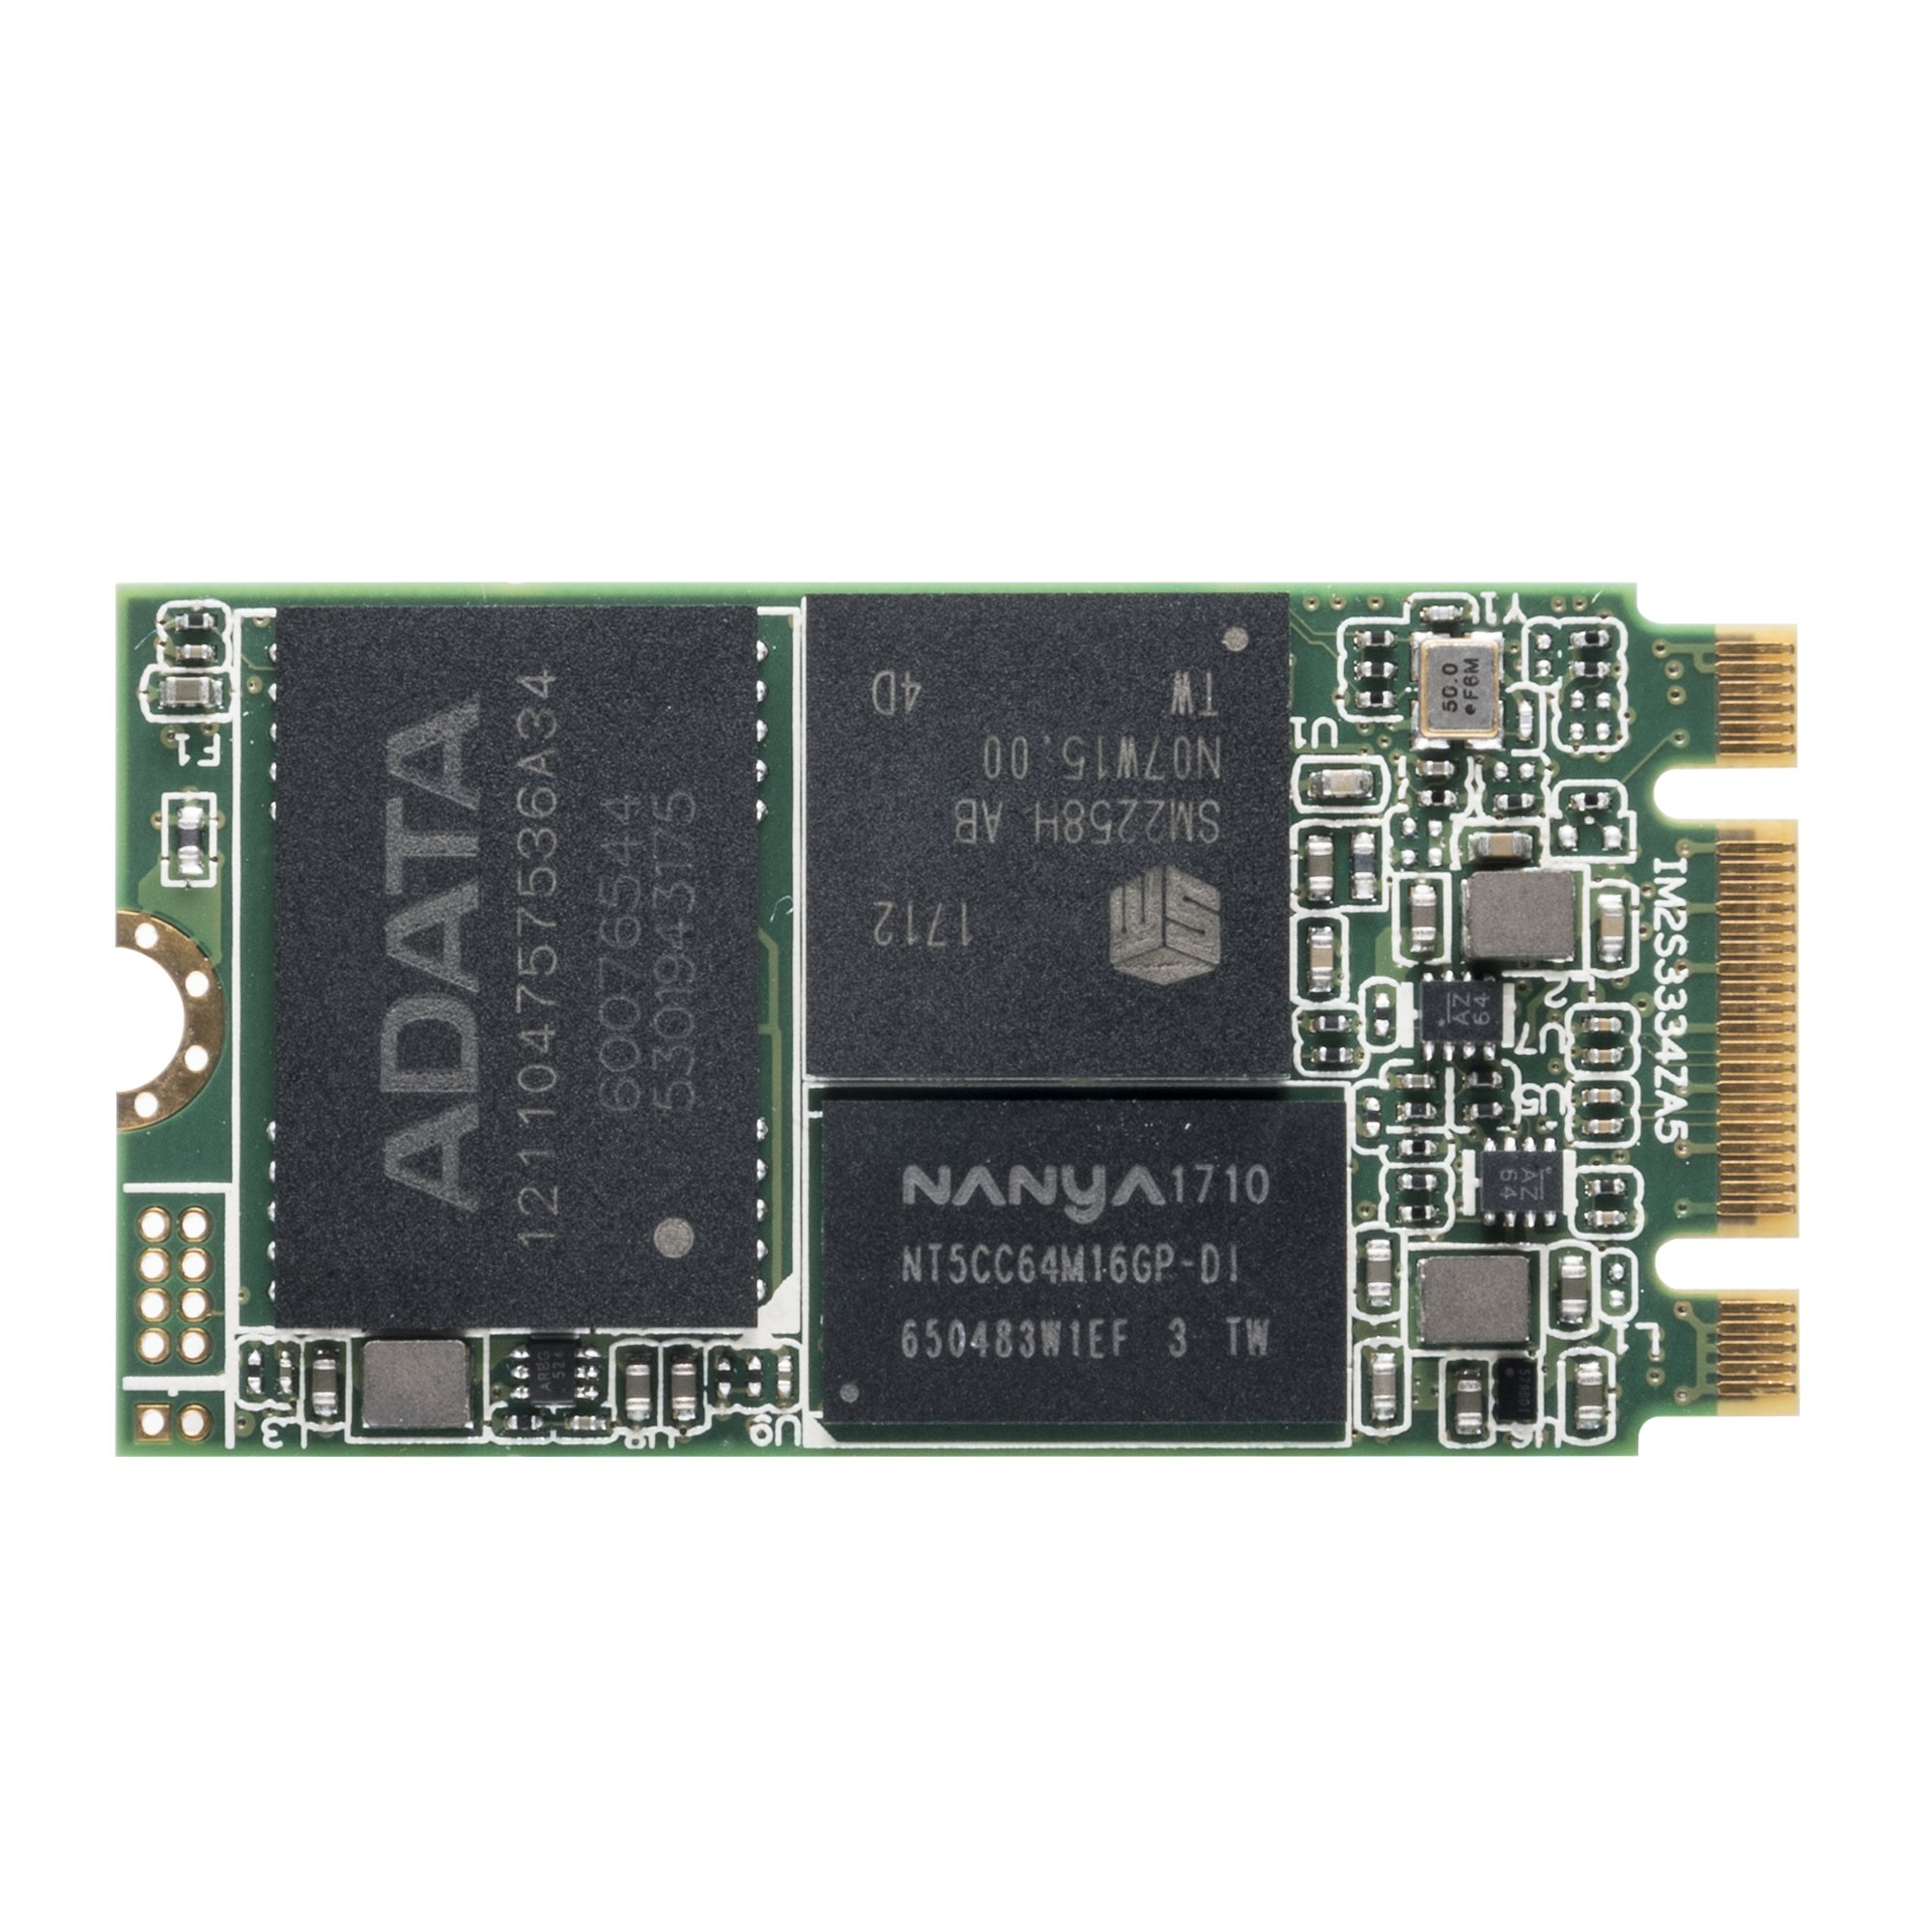 ADATA IM2S3334 128 GB Industrial-Grade M.2 2242 NGFF 42mm SATA III 6Gb/s Internal Solid State Drive (IM2S3334-128GD)